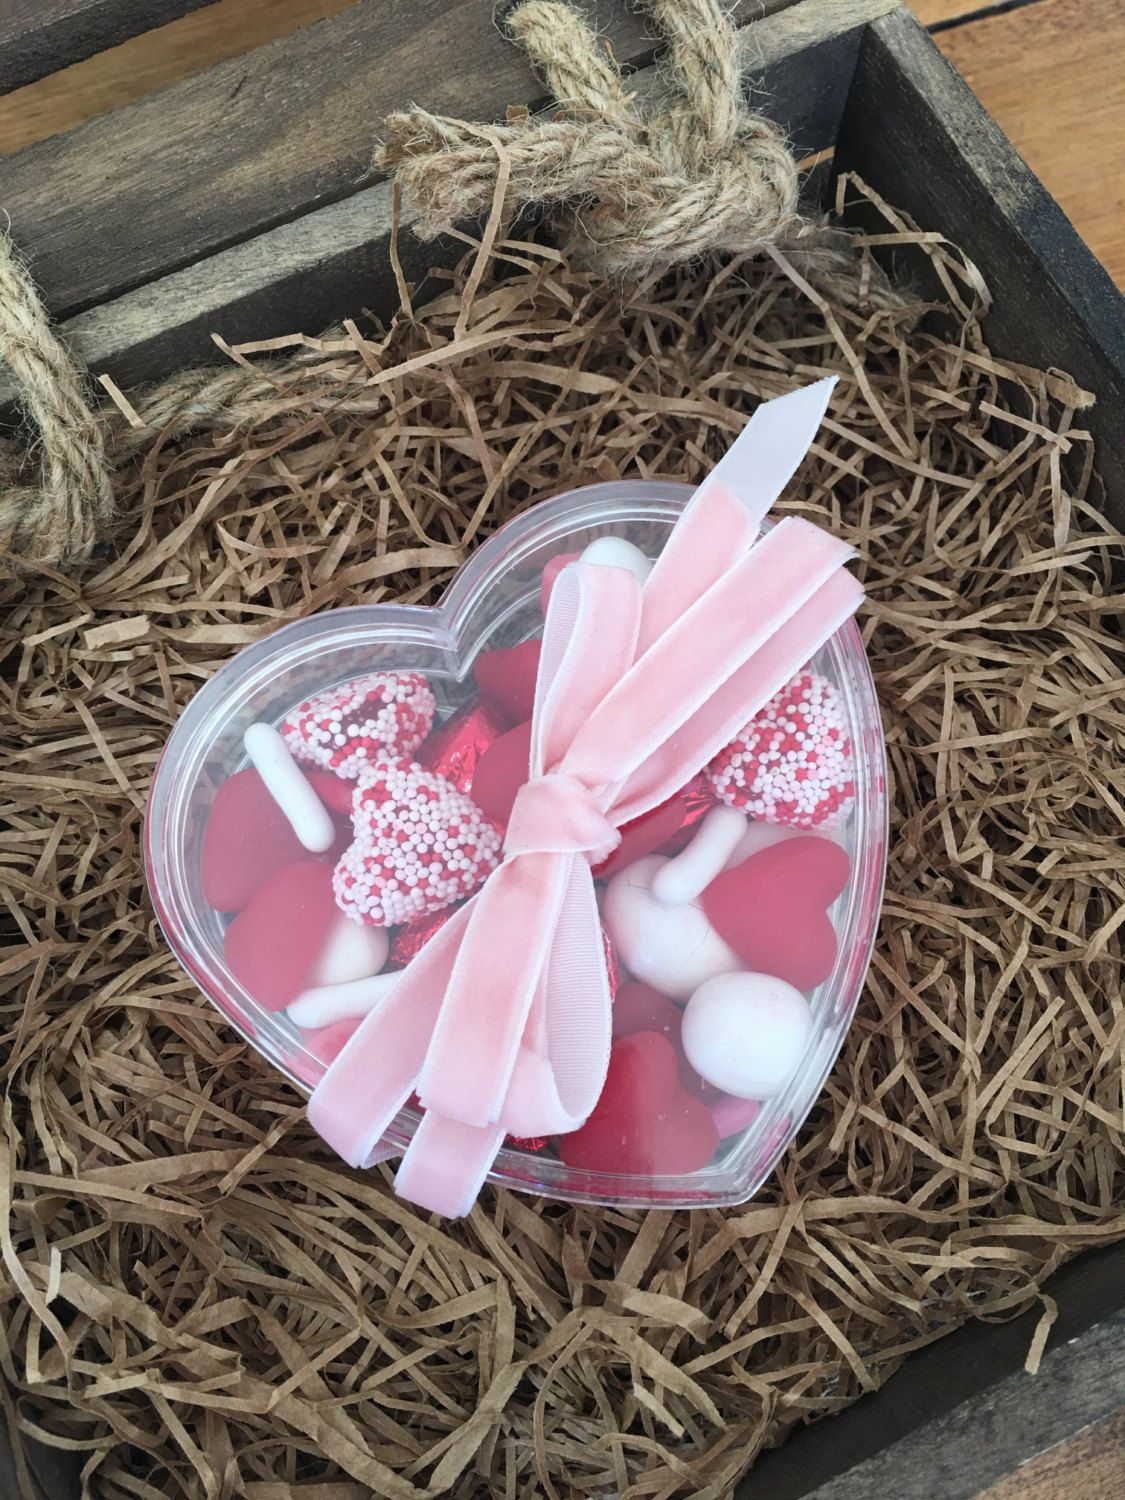 Small heart container filled with Assorted Valentine Candy Mix by PoppinsandPost on Etsy